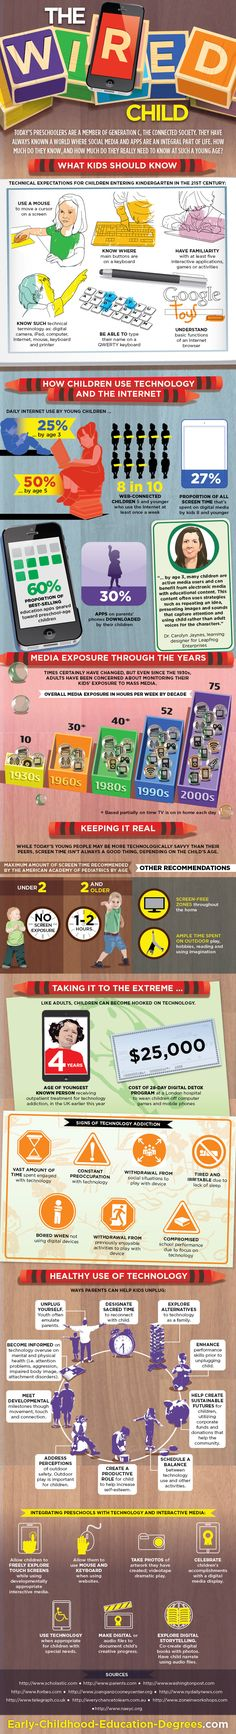 Interesting infographic. Especially the overview of signs of internet addition and what is healthy use of internet: http://www.edudemic.com/wp-content/uploads/2013/10/the-wired-child_524ce1f3f29b8.jpg